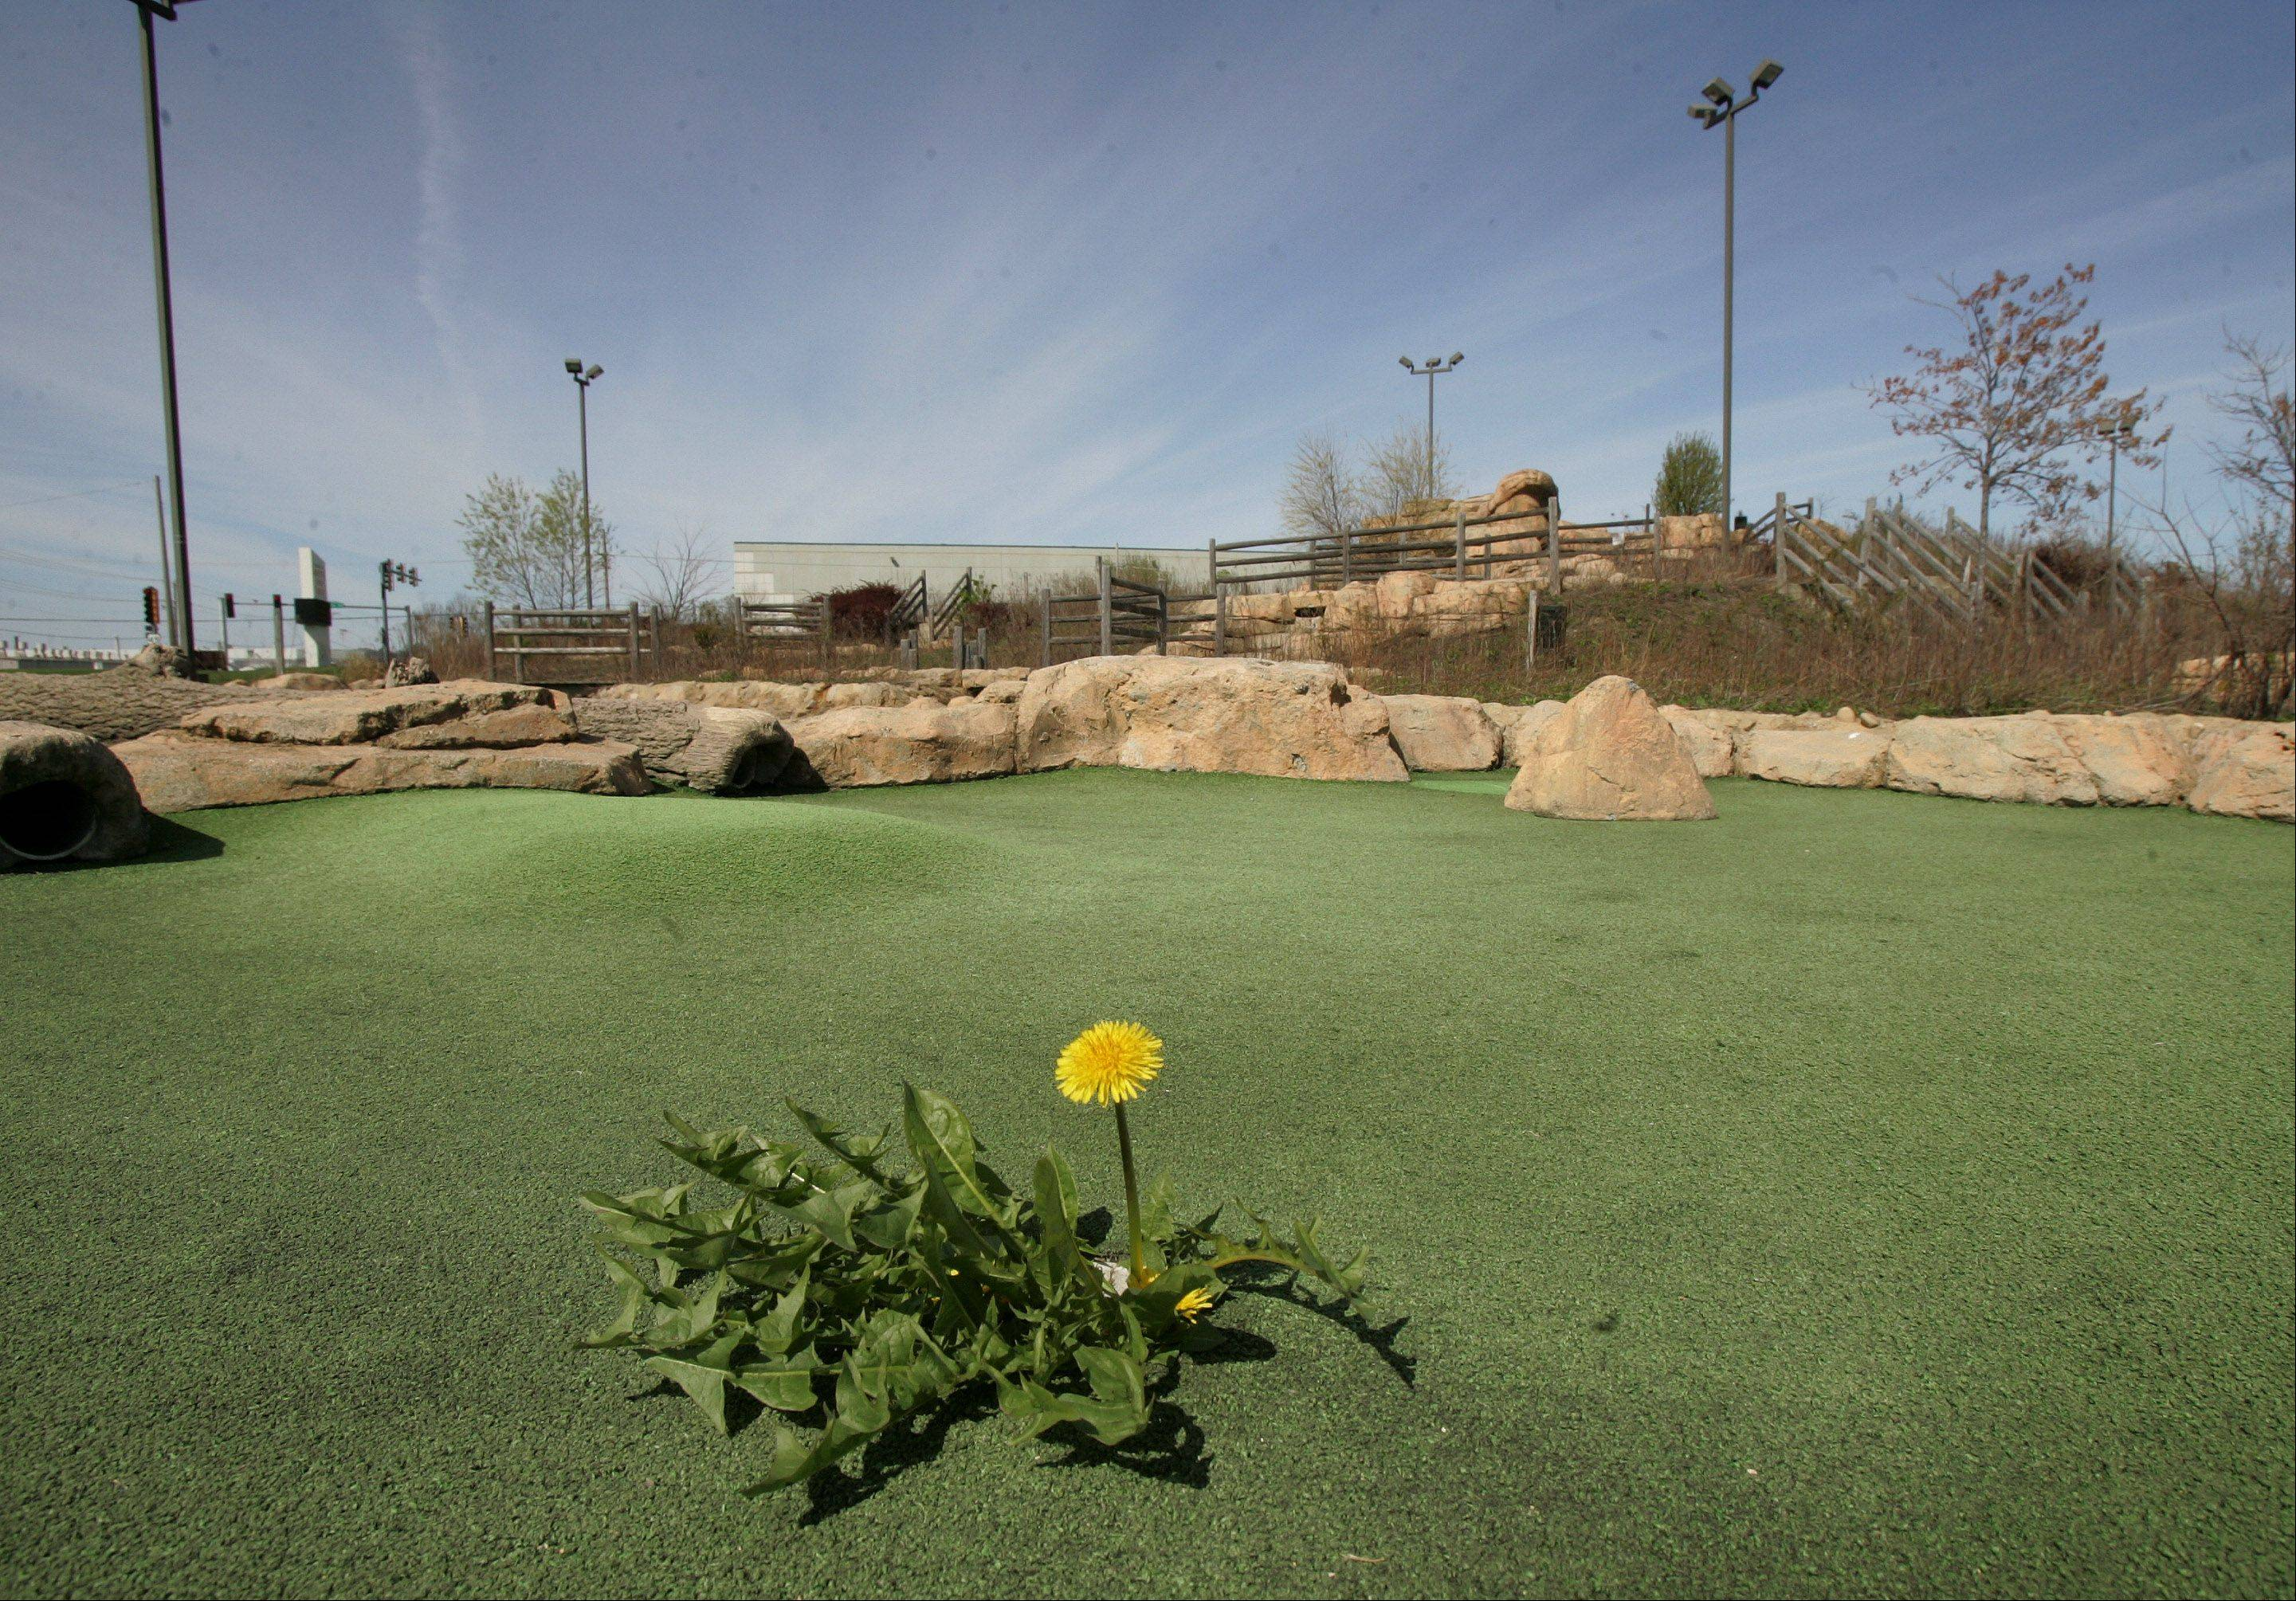 The miniature golf course at the Libertyville Sports Complex has been closed since 2007 but a proposal to reopen the facility at Route 45 and Peterson Road has surfaced. A Chicago man wants to reopen the course with a Hawaiian theme.